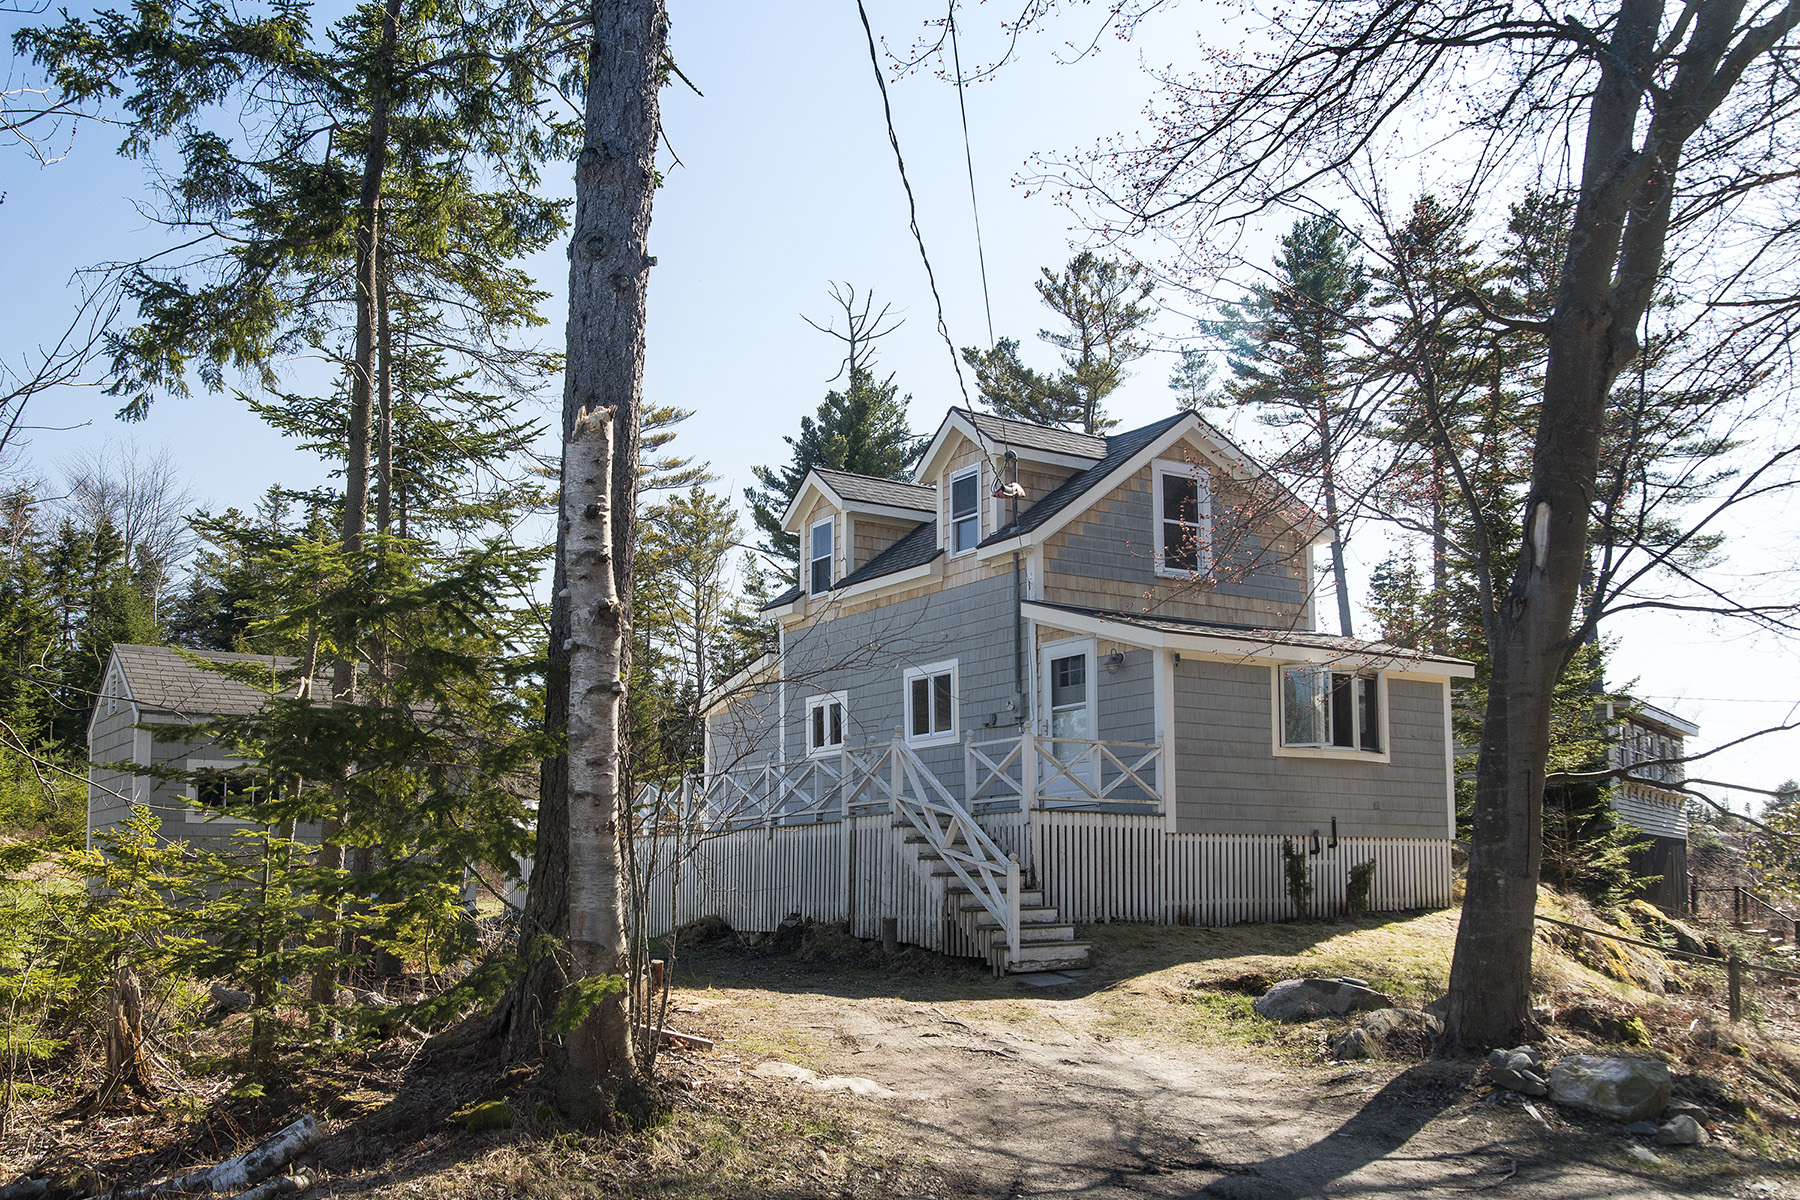 Single Family Home for Sale at 25 Cove Road Long Island, Maine 04050 United States